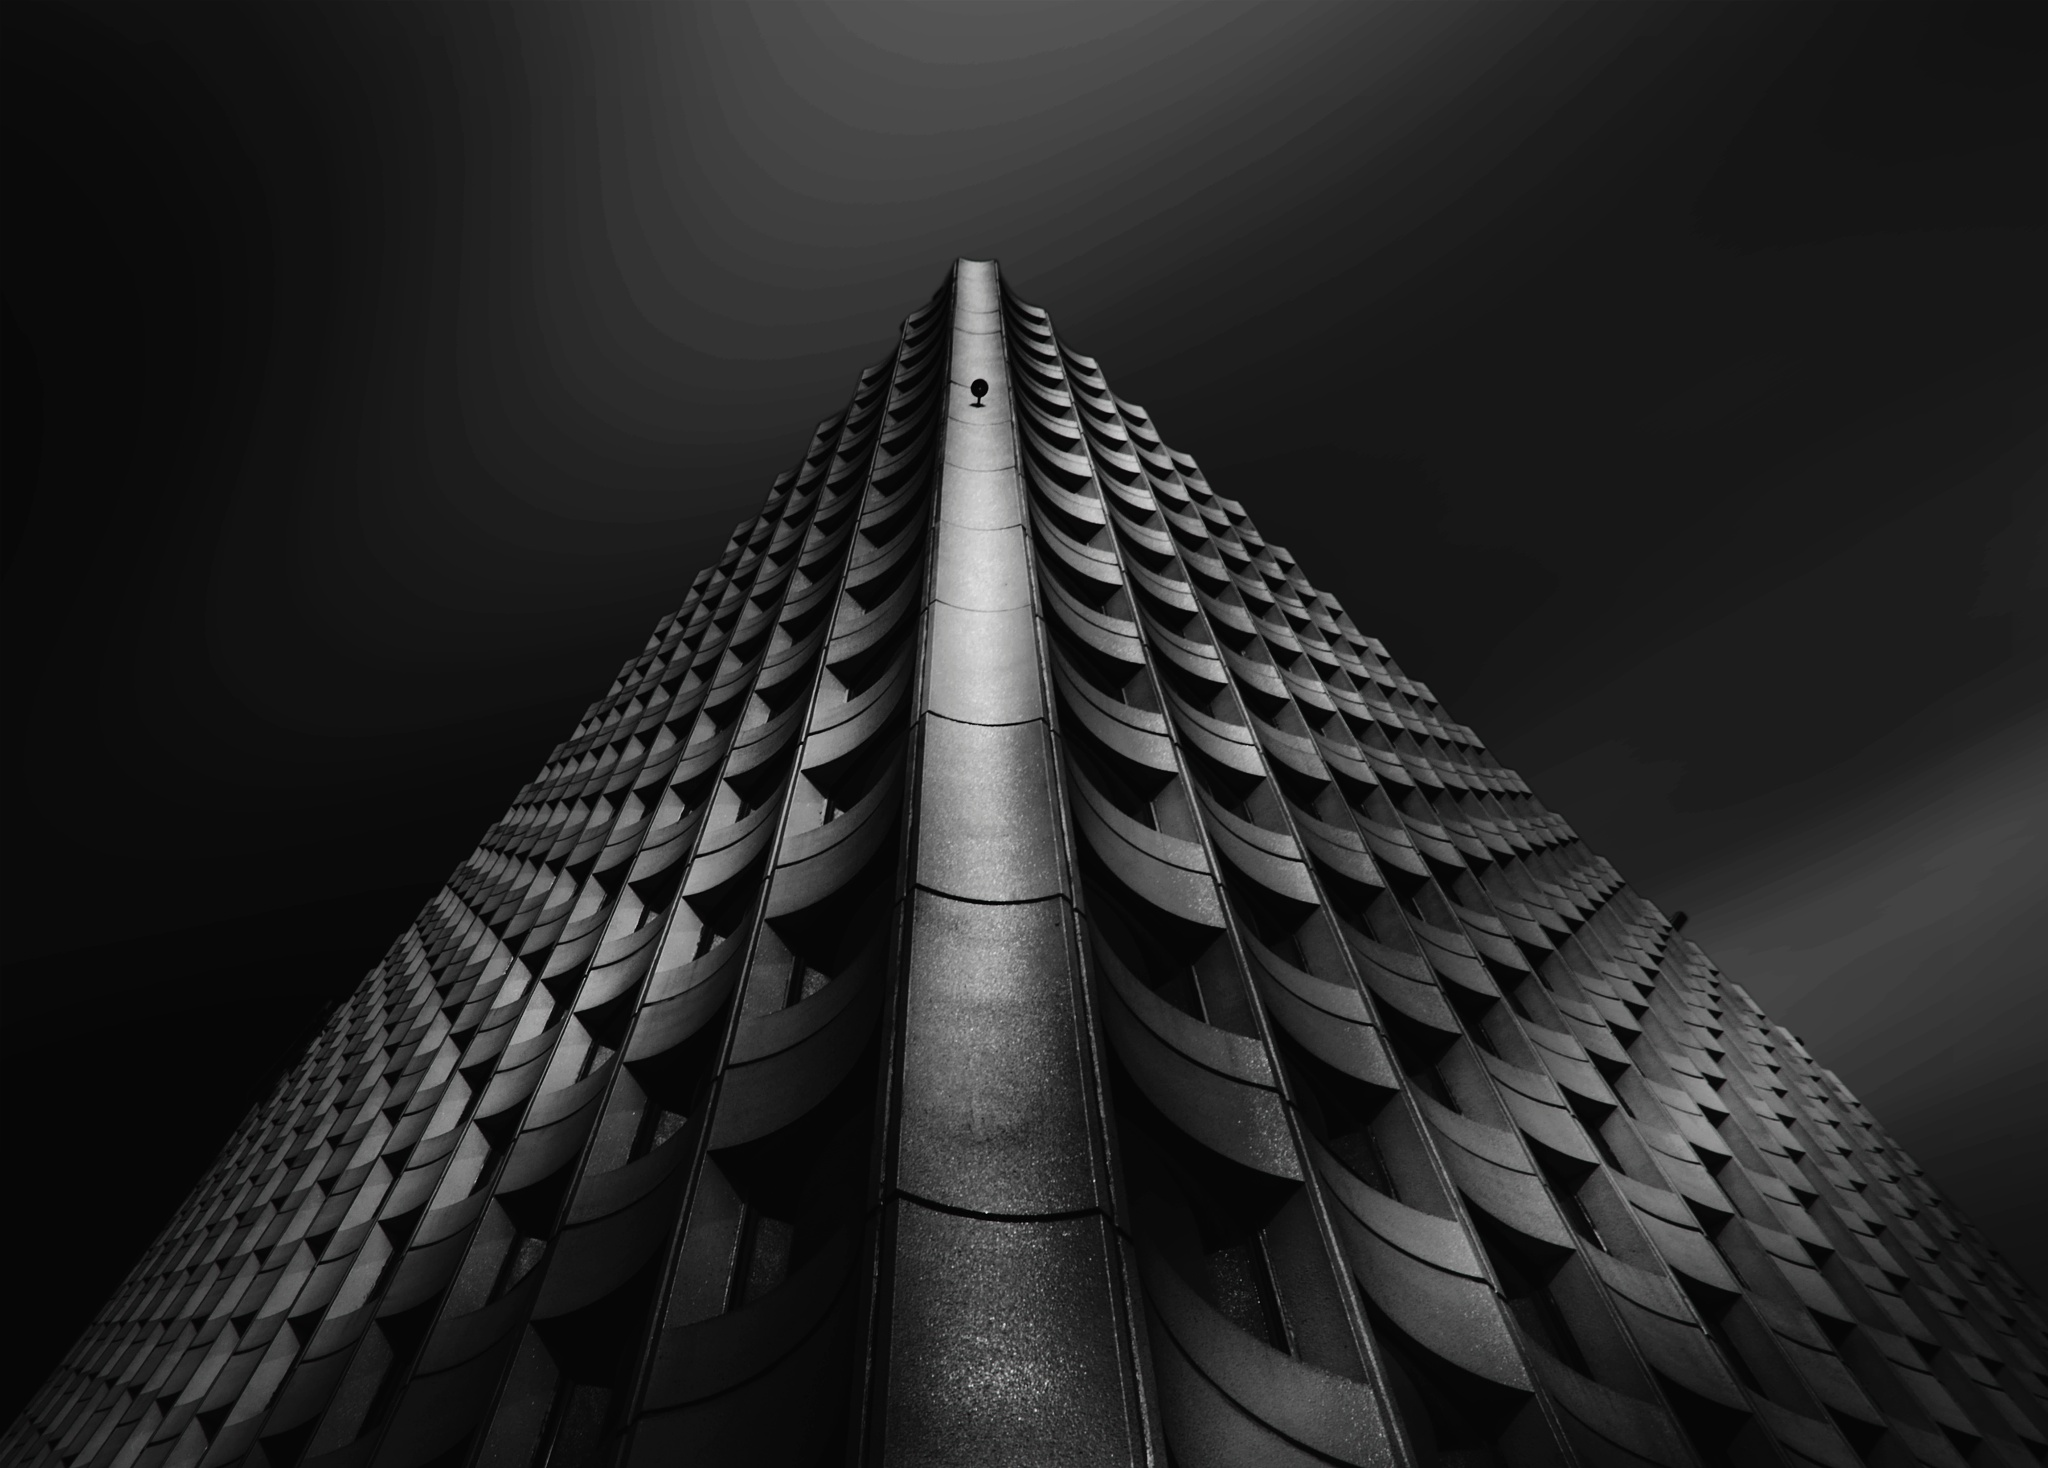 Building by Hyeong Rok AN